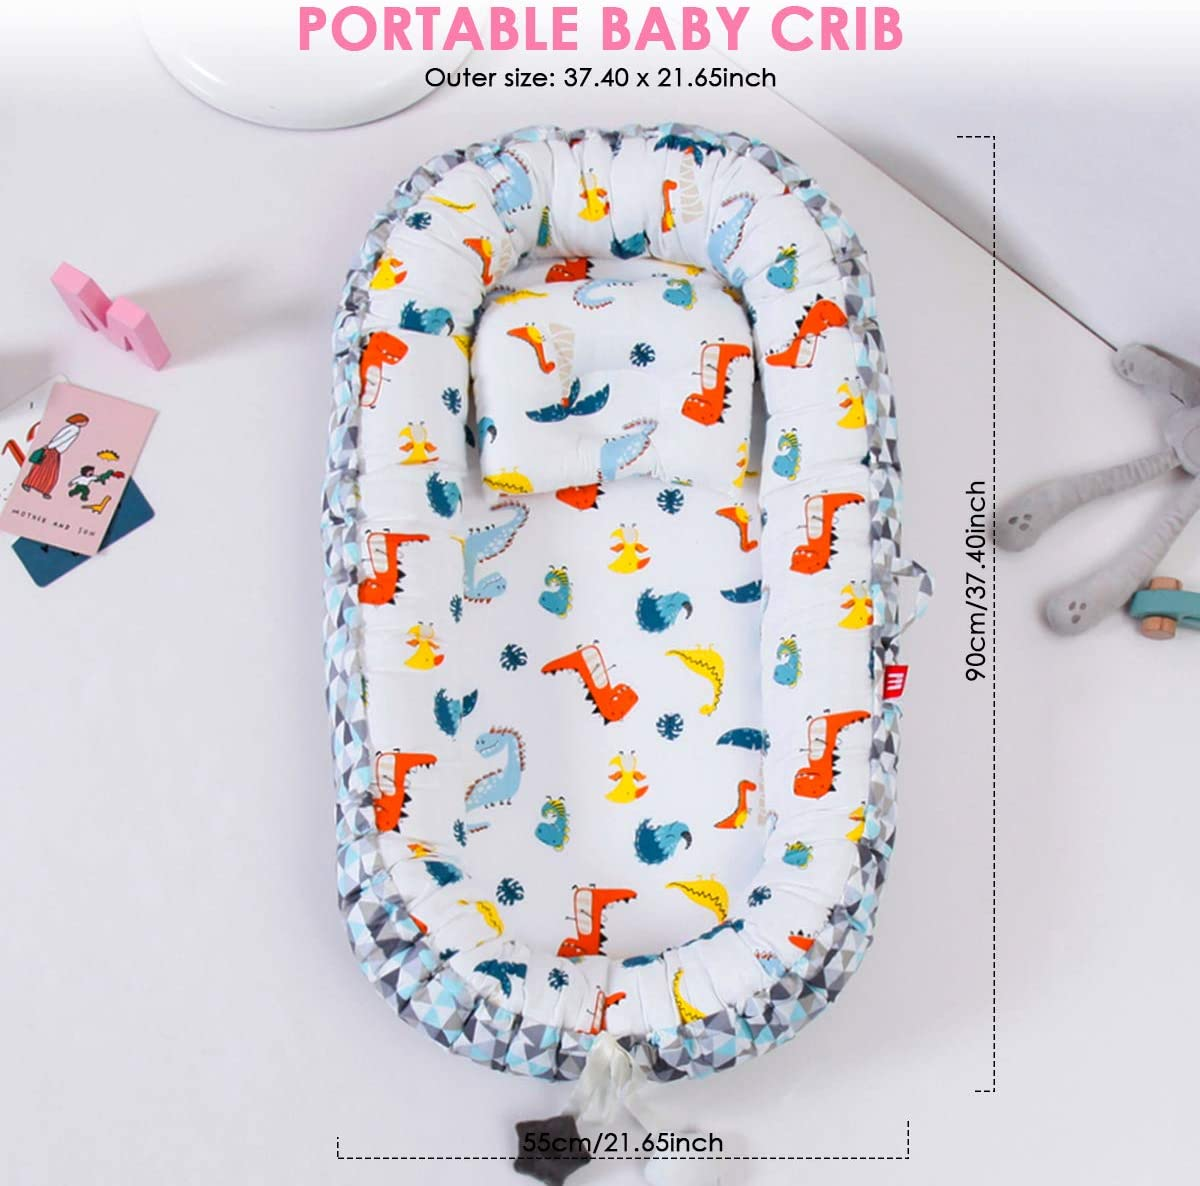 Yinuoday Baby Nest for Newborn and Babies,Baby Pod Baby Bassinet Portable Baby Lounger Infant Co-Sleeping